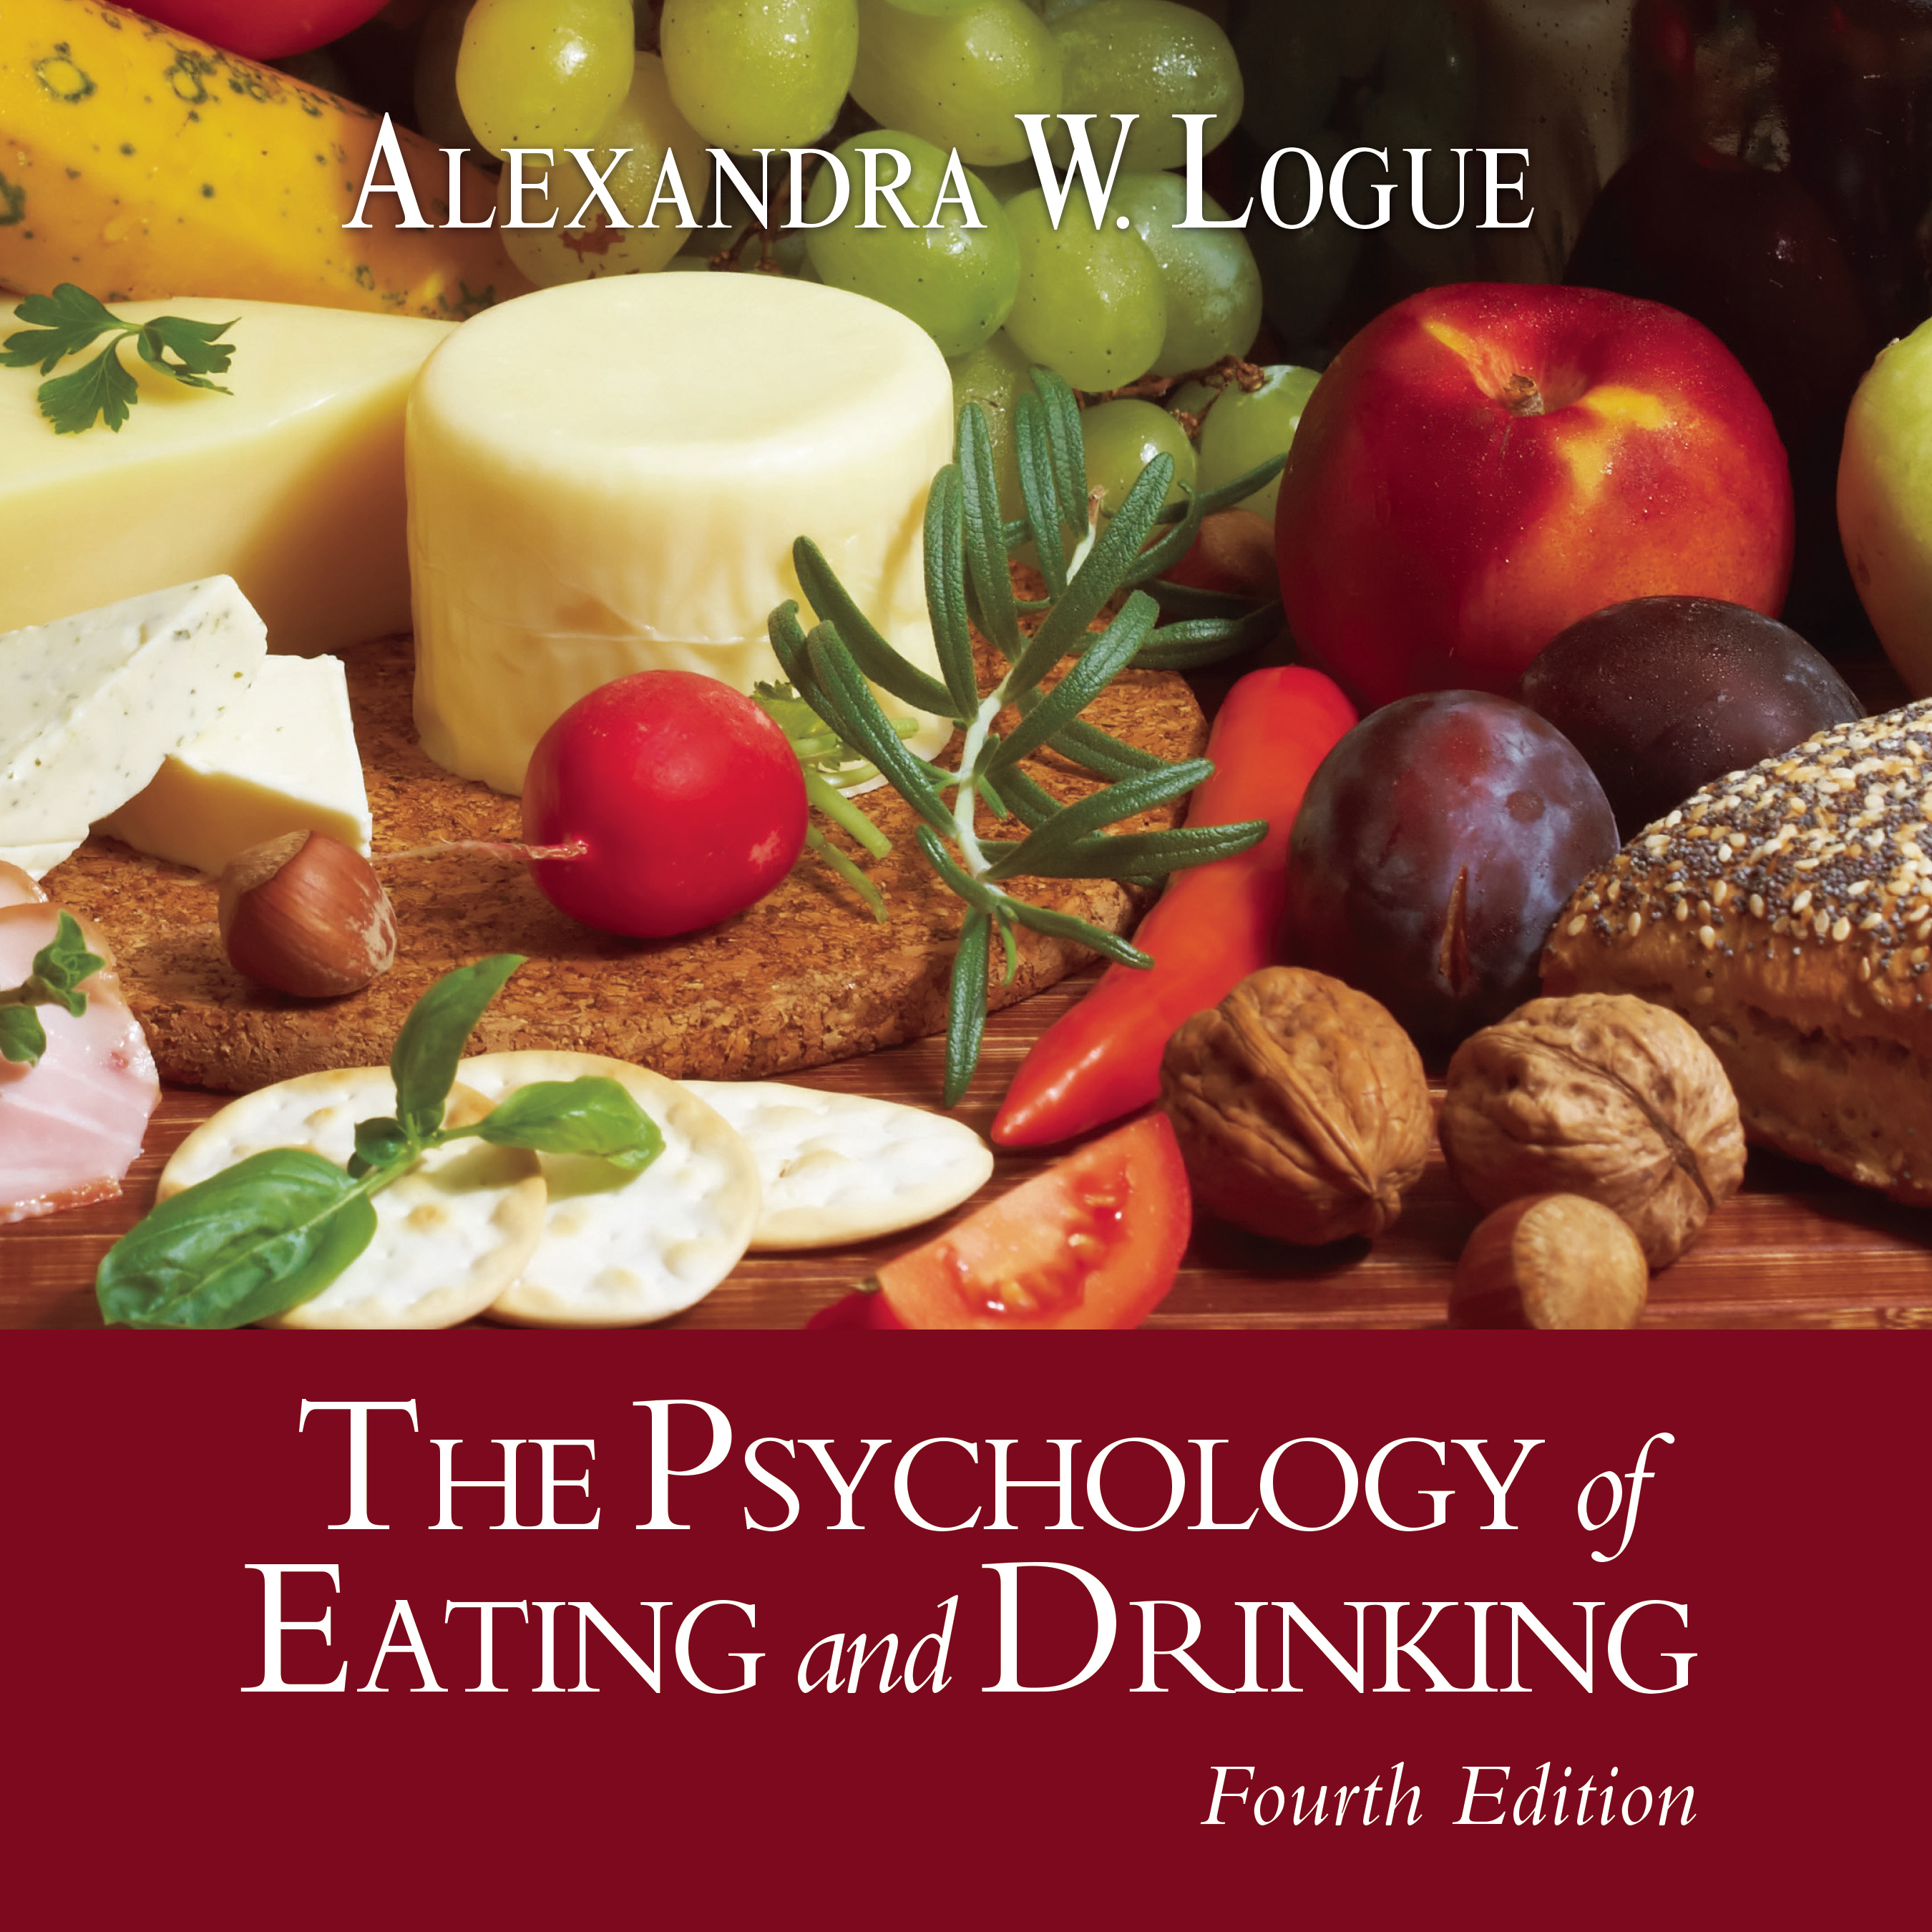 Printable The Psychology of Eating and Drinking Fourth Edition Audiobook Cover Art